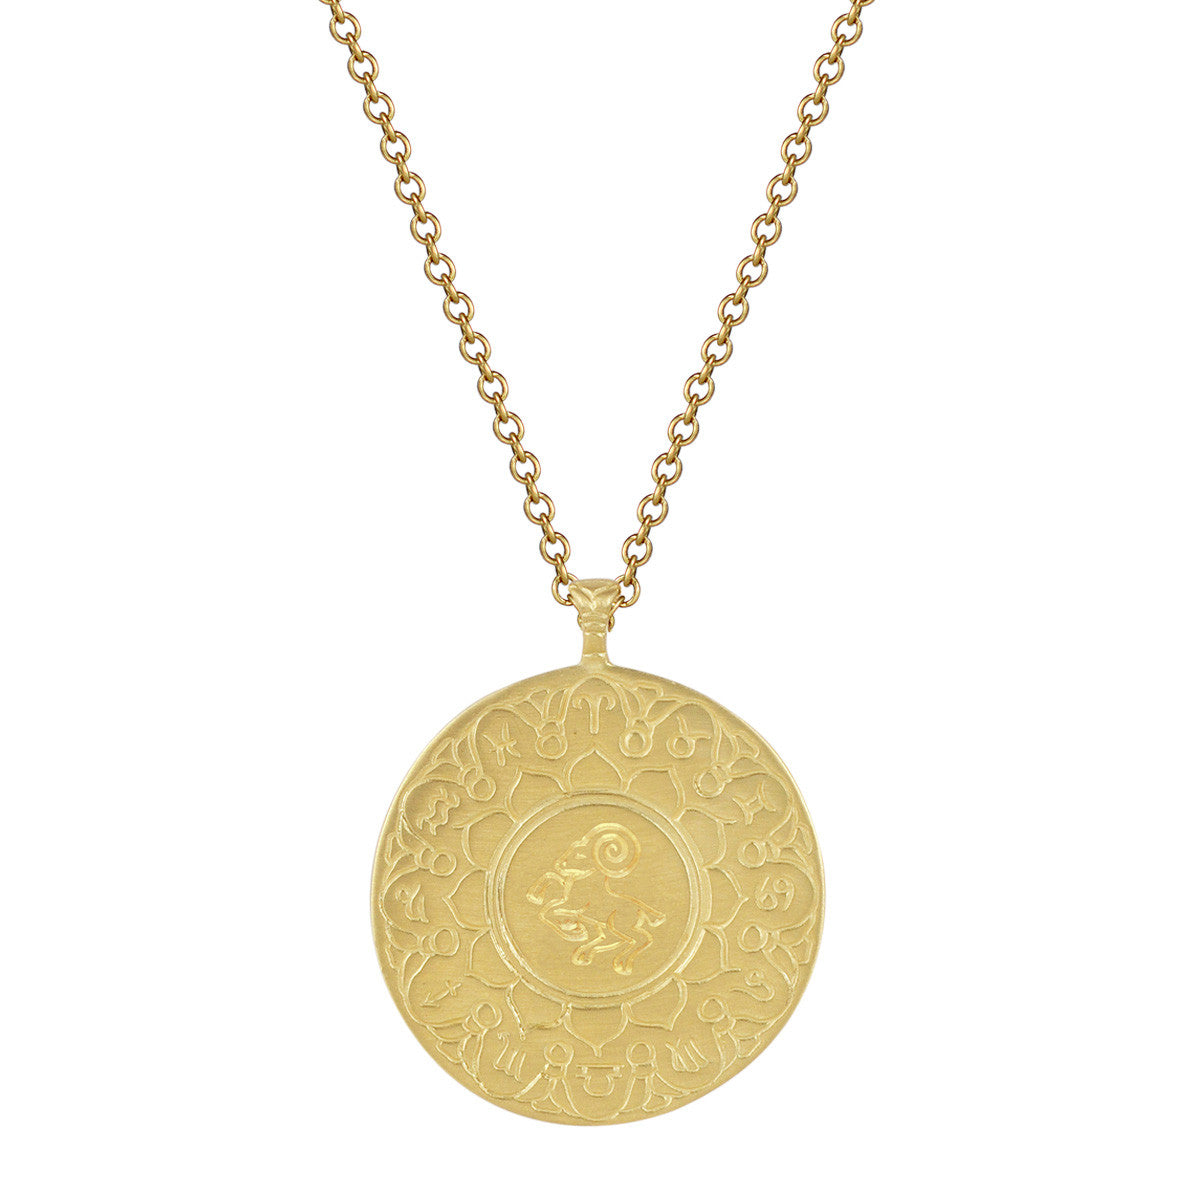 18K Gold Large Aries Astrology Pendant